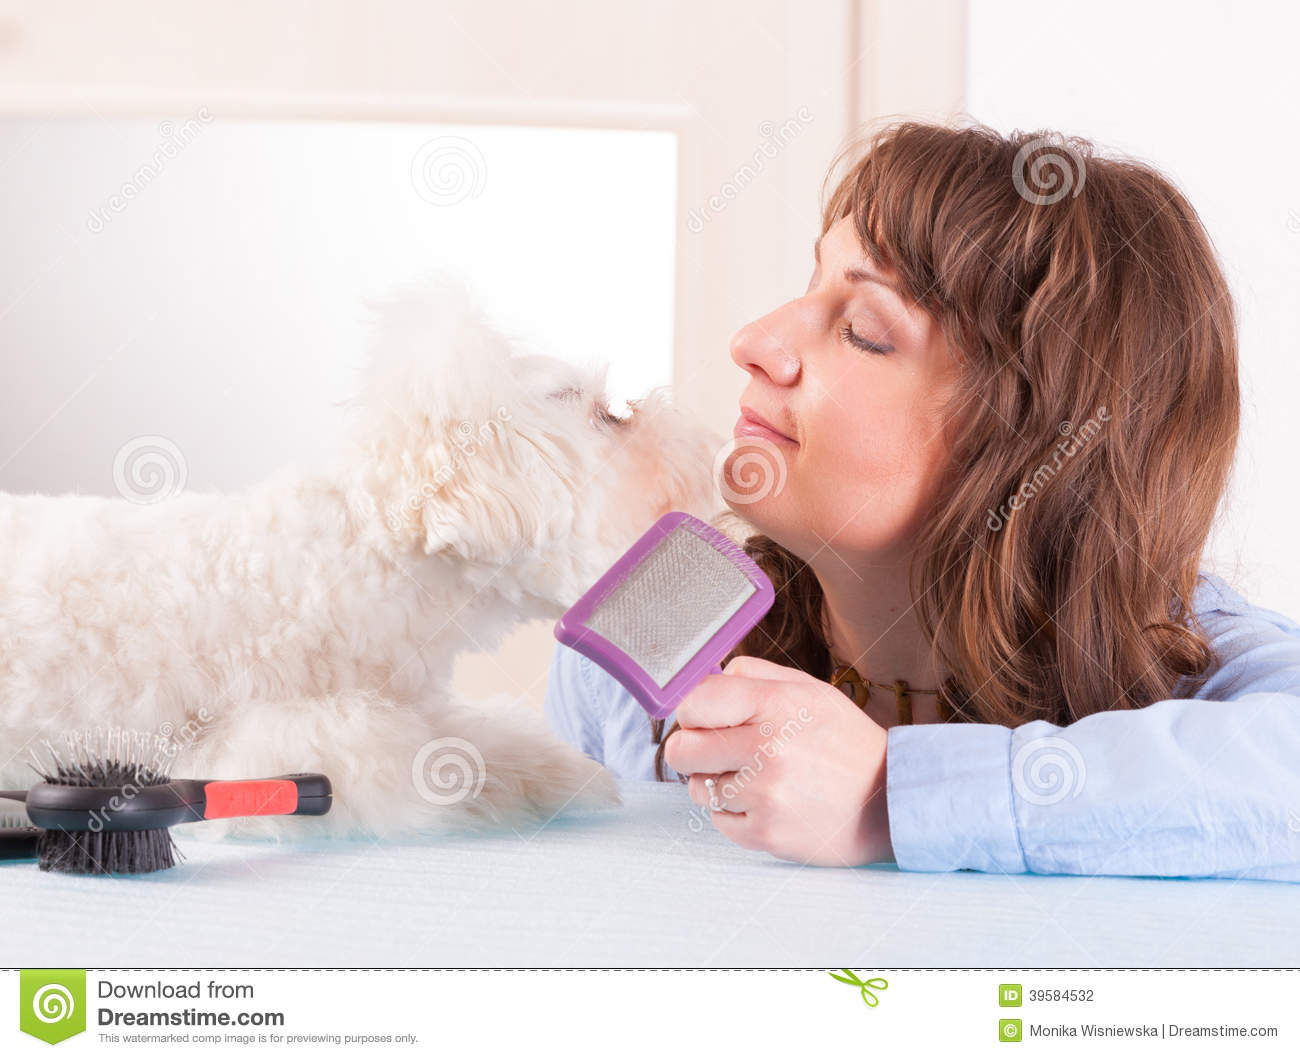 Related image with Dog Breeding A Woman